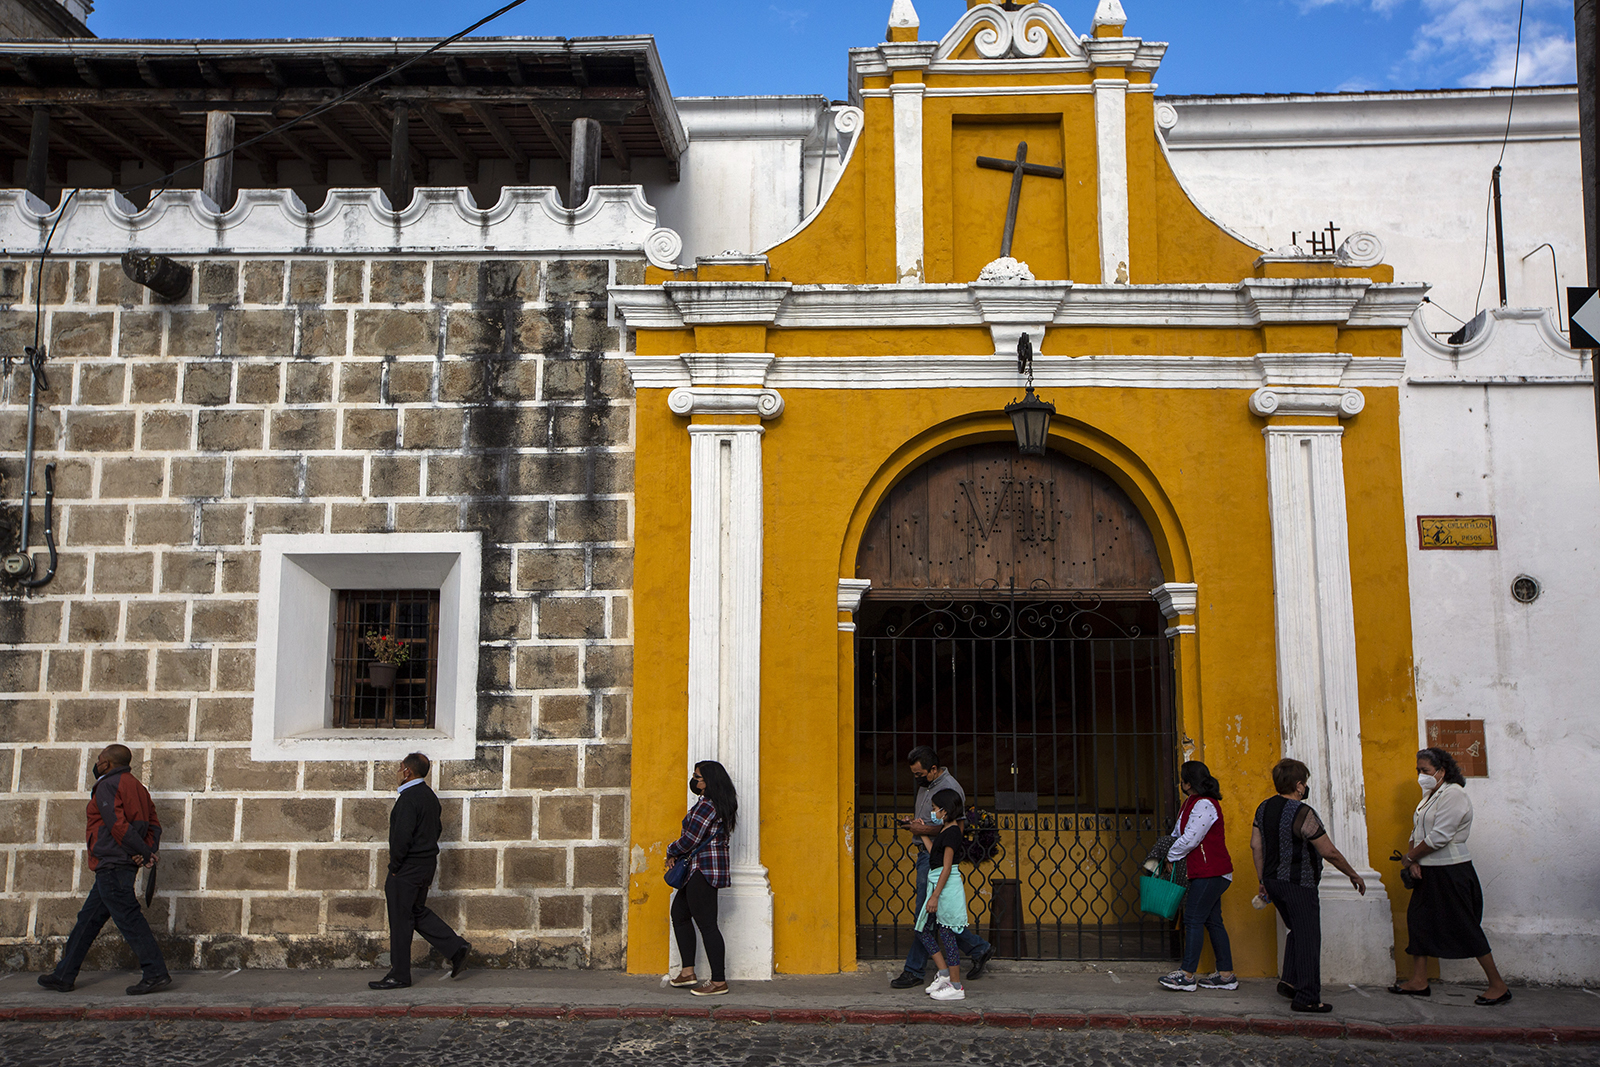 Neighbors walk past a Via Crucis station during holy week amid the COVID-19 pandemic in Antigua, Guatemala, Thursday, April 1, 2021. The traditional Easter processions have been canceled in Guatemala as a measure to contain the spread of the new coronavirus. (AP Photo/Moises Castillo)